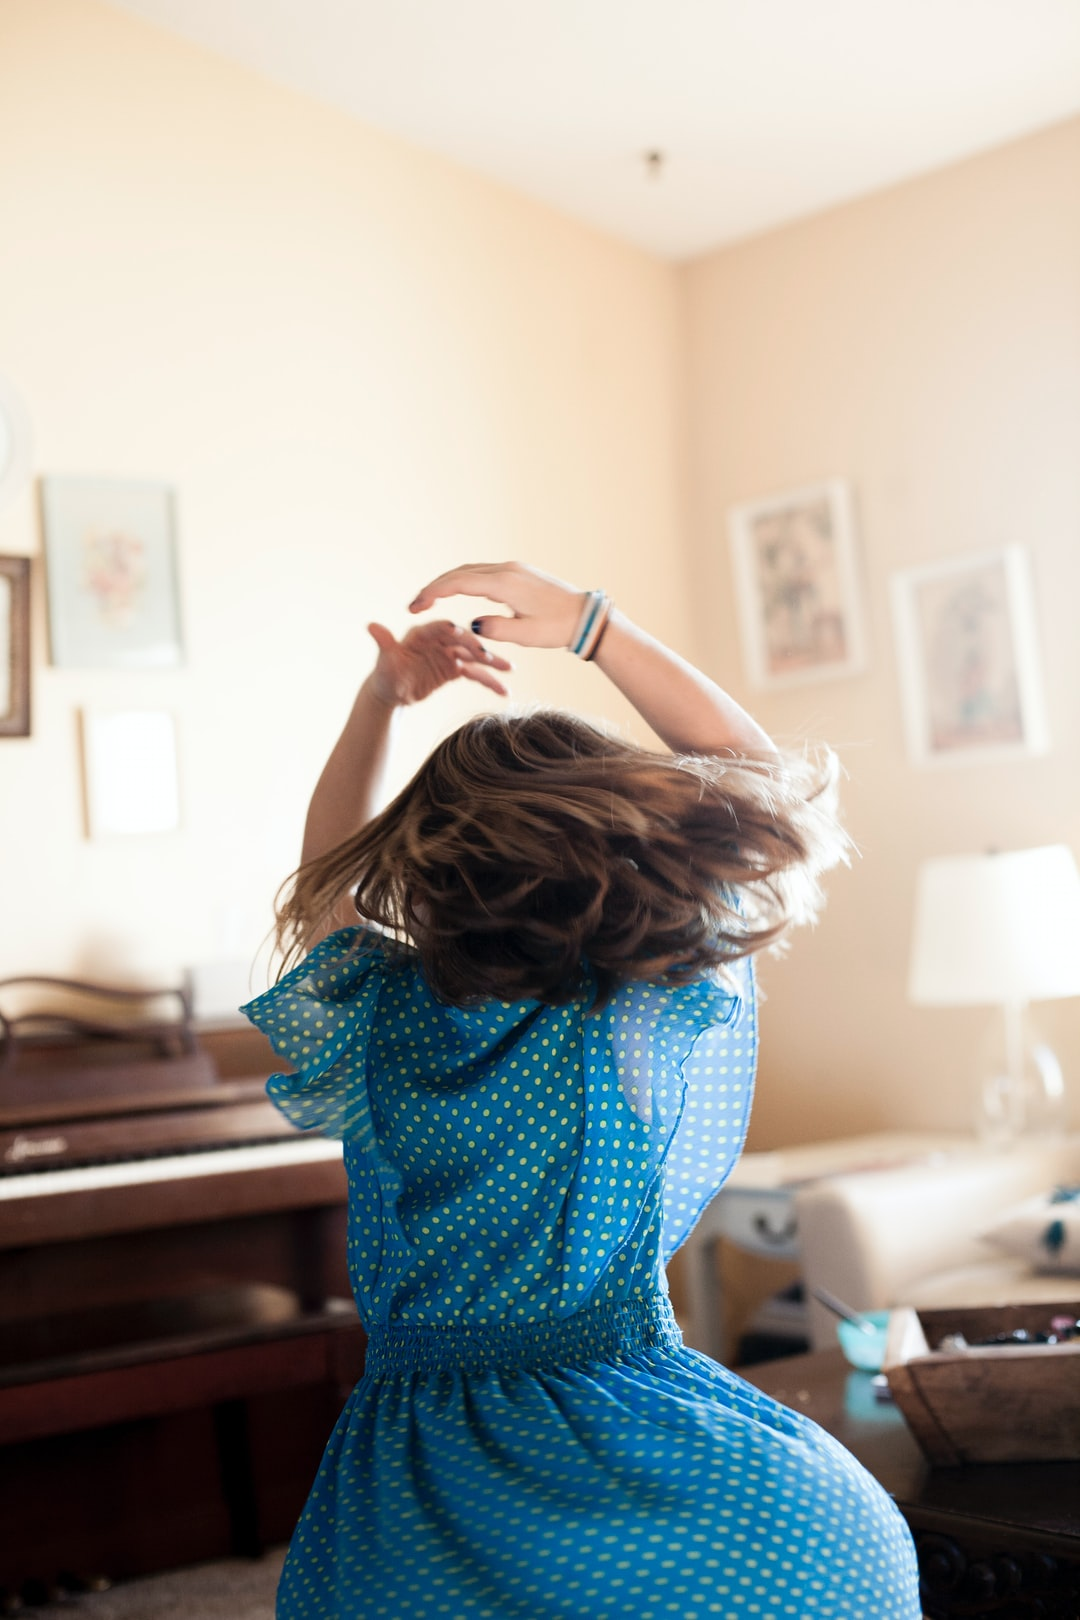 It was a normal Saturday morning at our house, and I pulled out my camera to document the happenings of our morning. My middle daughter put on some music and started dancing. The morning sun was shining through the windows beautifully as I caught her in mid twirl.